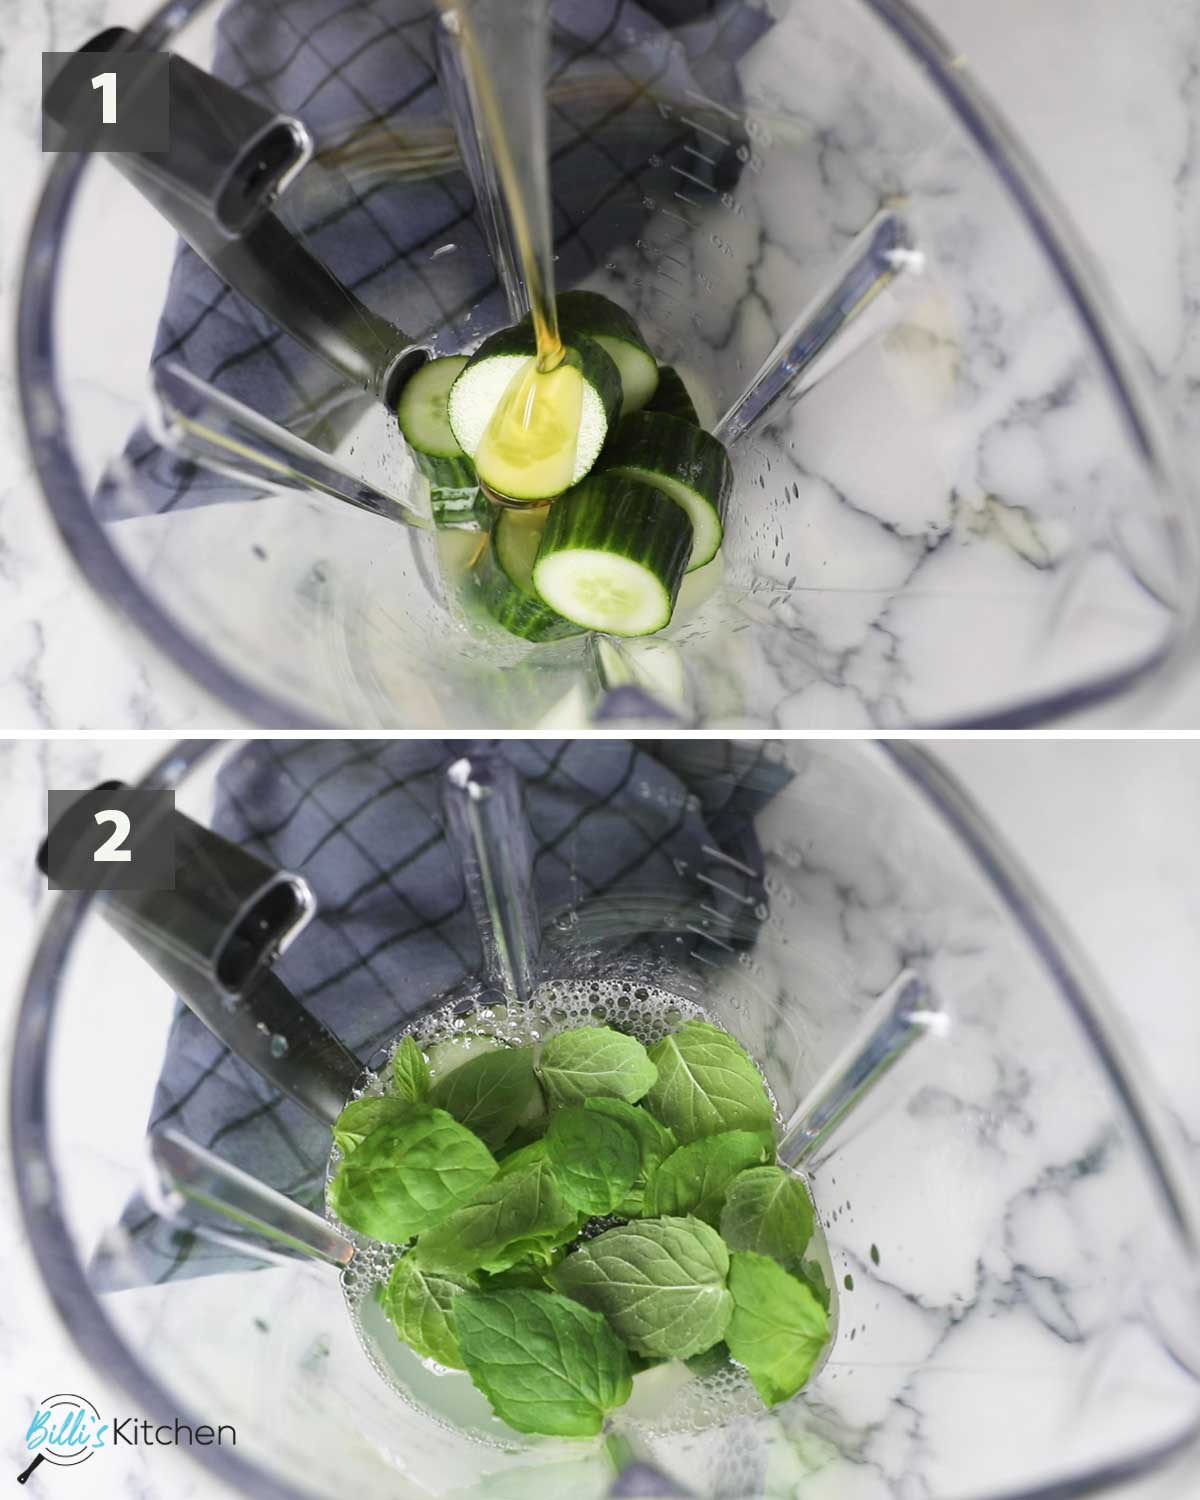 First part of a collage of images showing the step by step process on how to make cucumber mint lemonade.